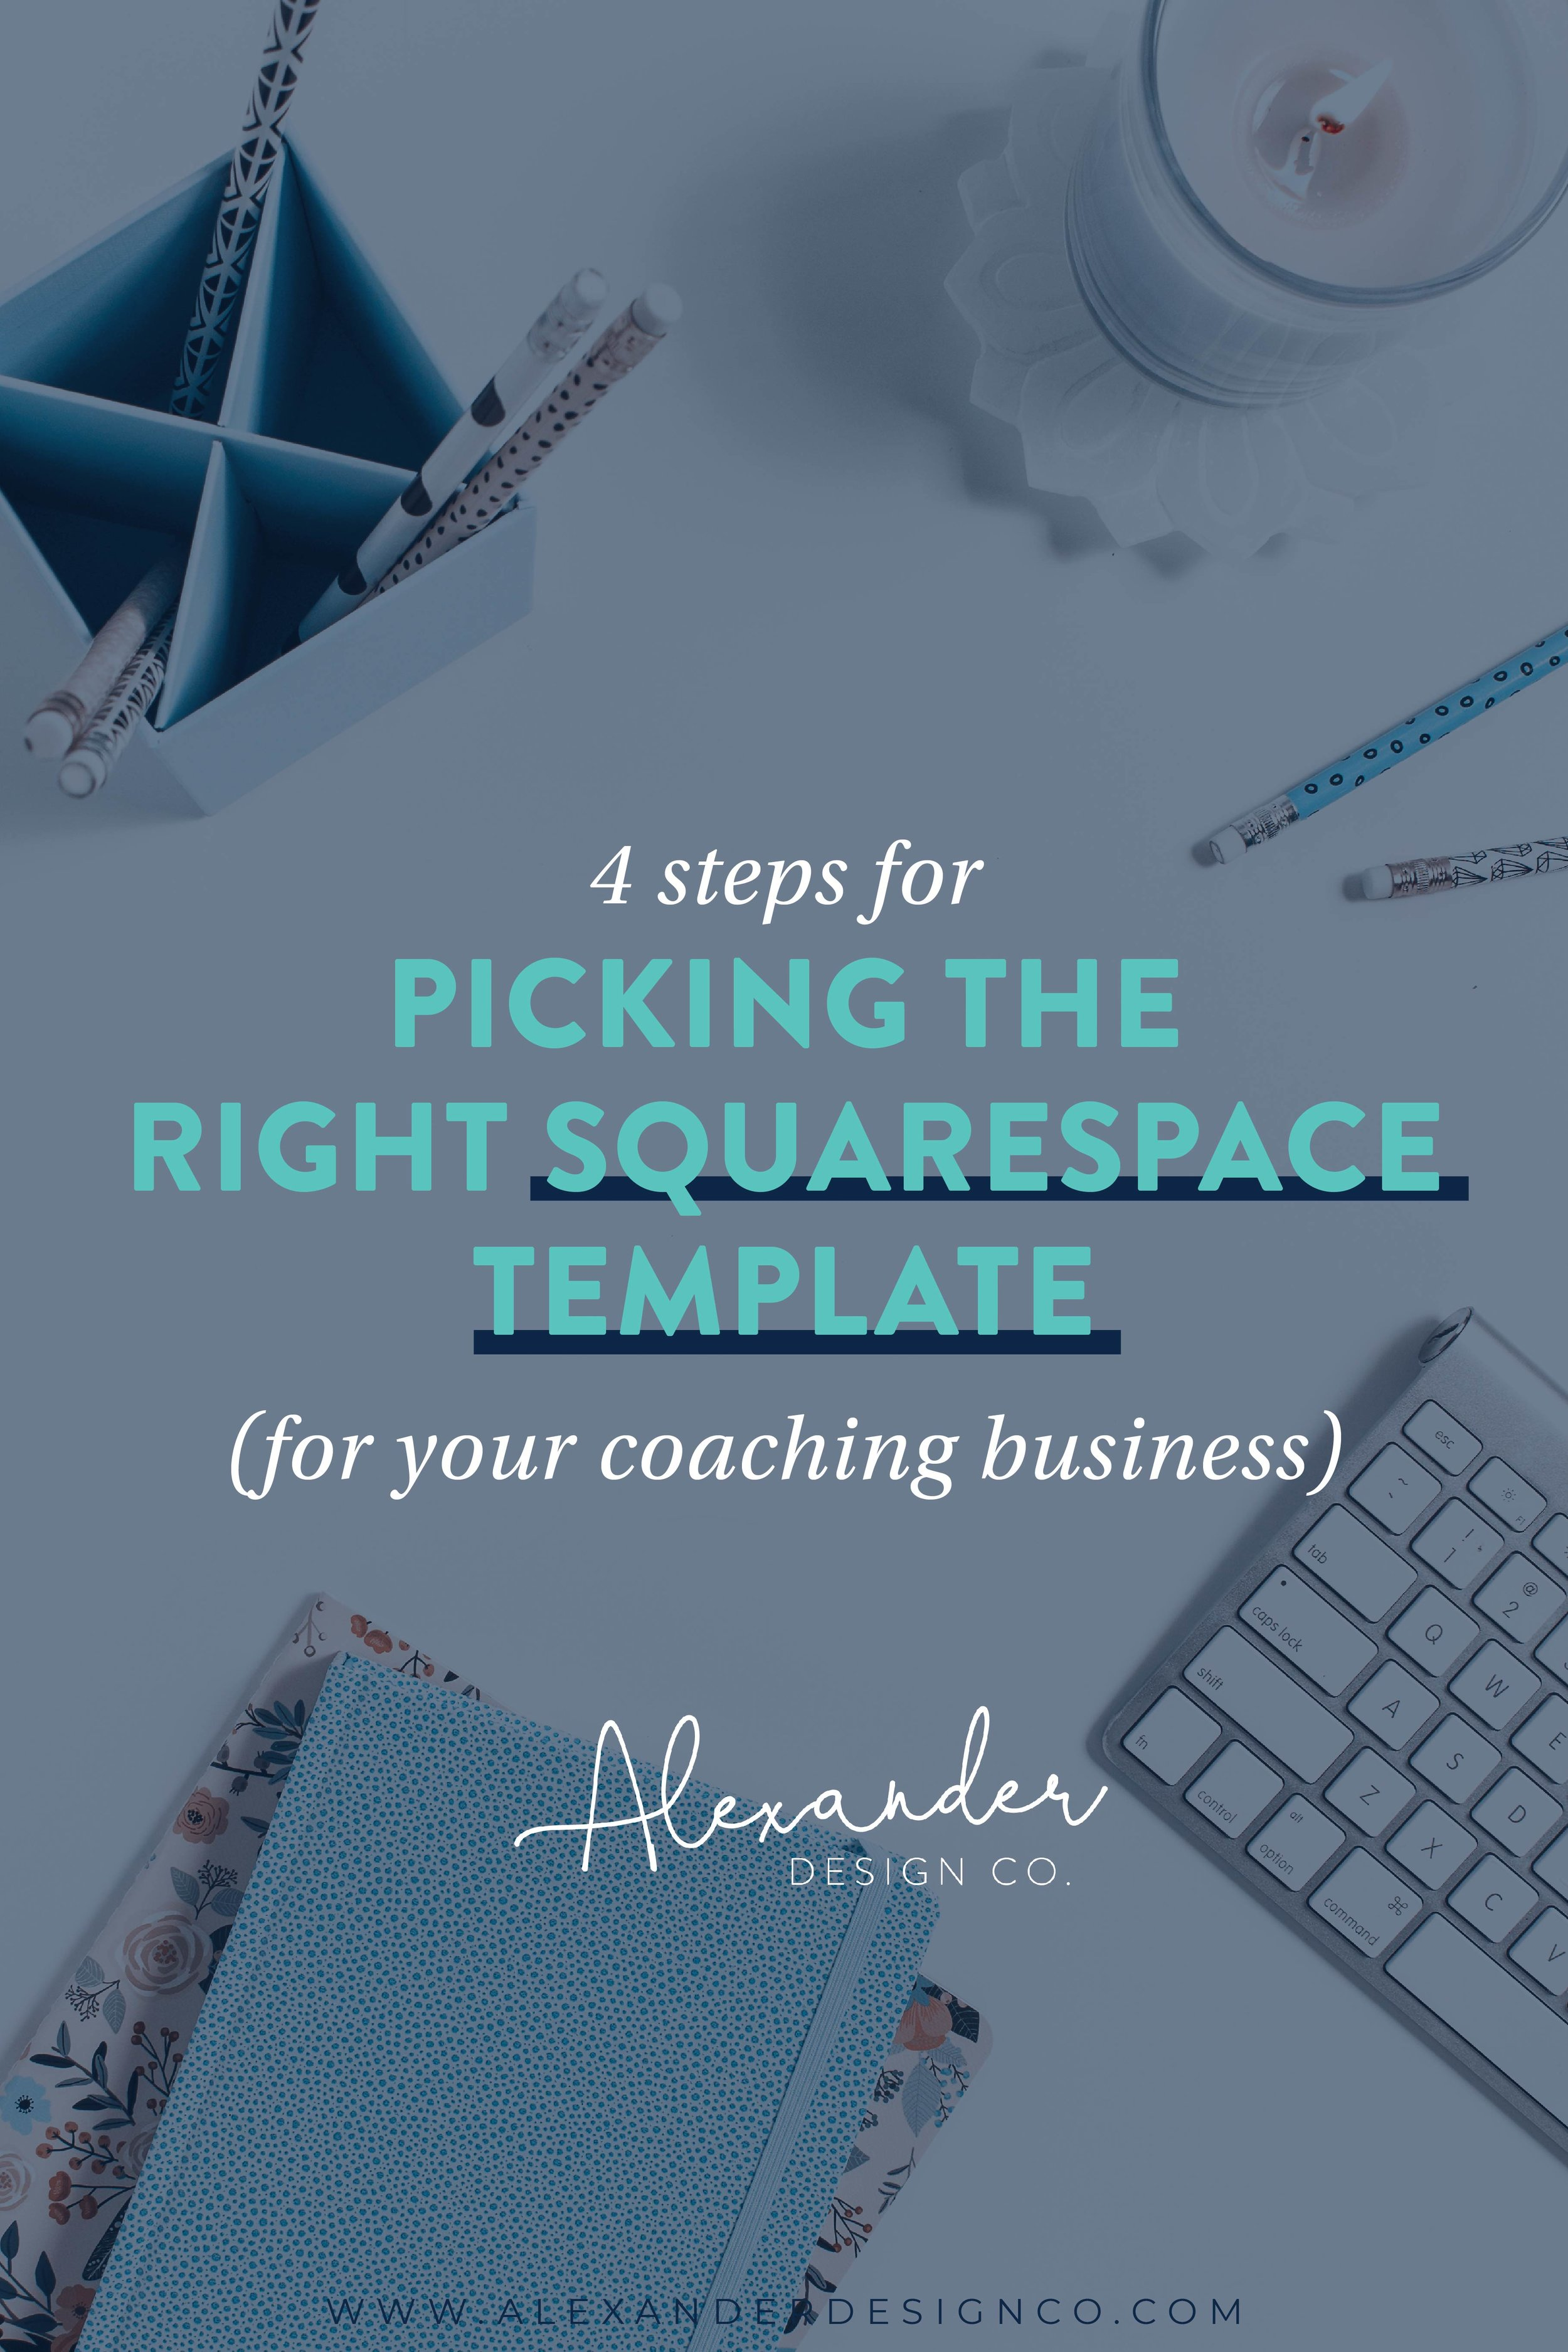 Choosing a Squarespace template for your coaching business. jpg